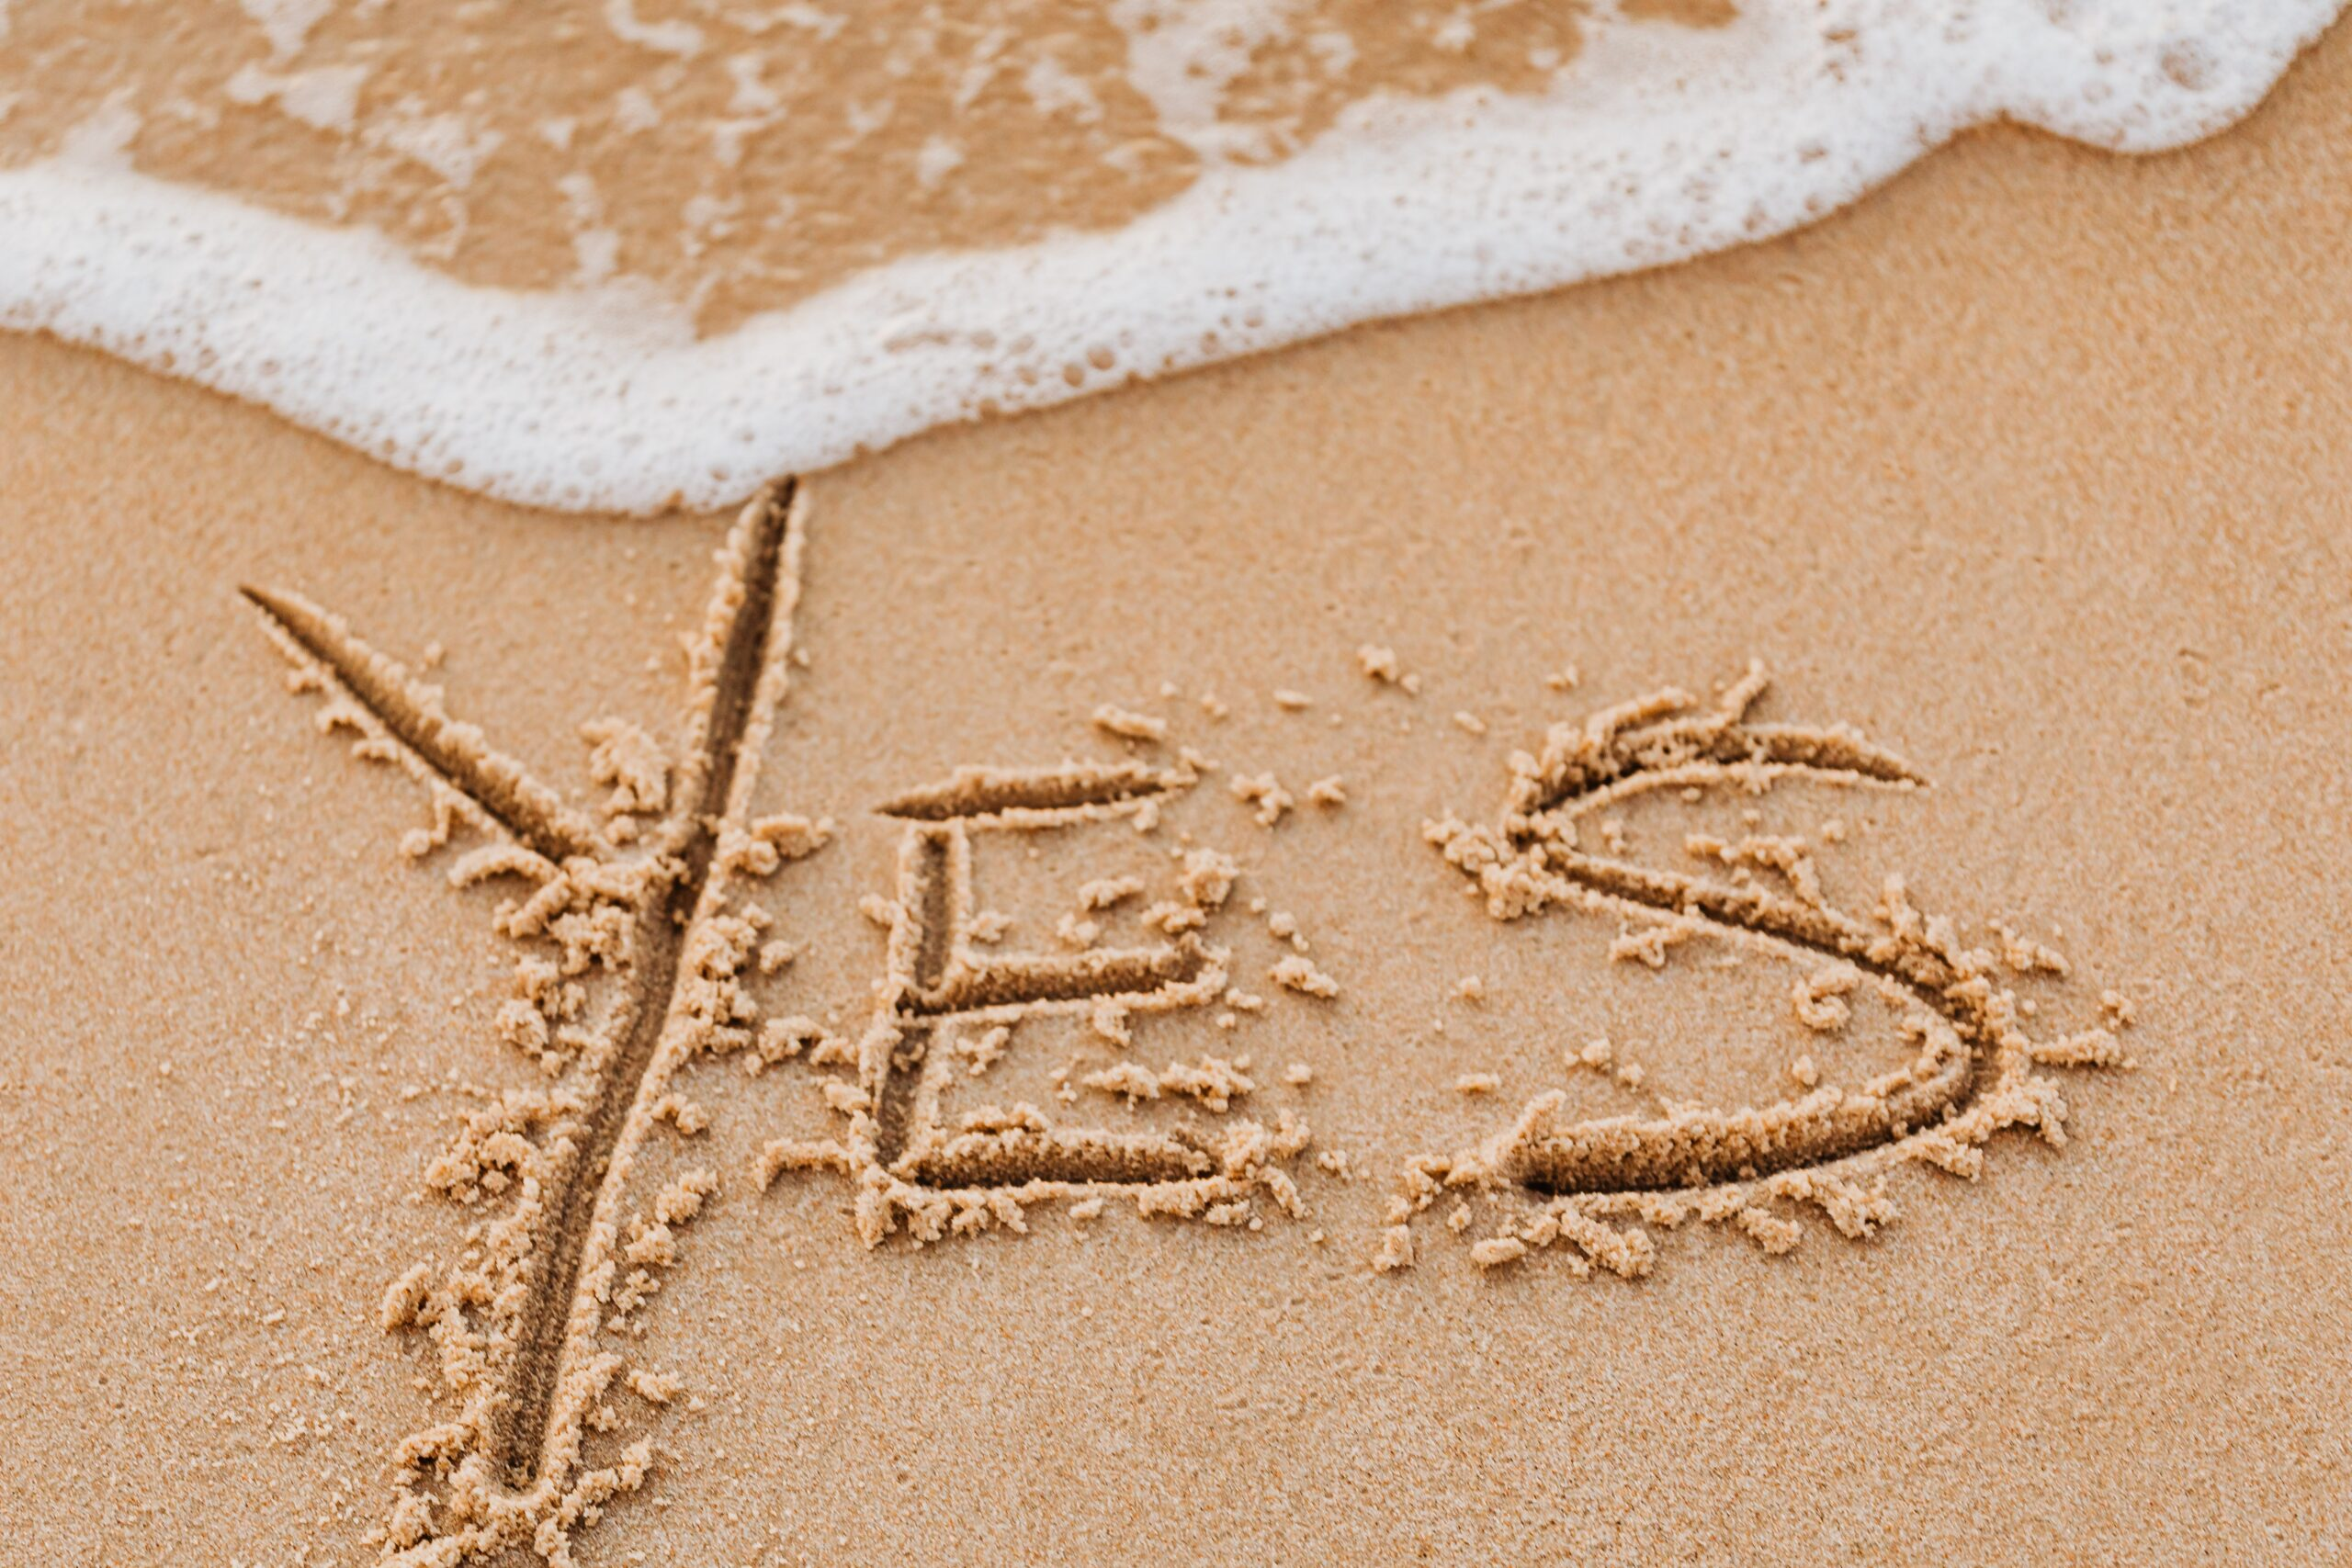 The word YES carved in sand.